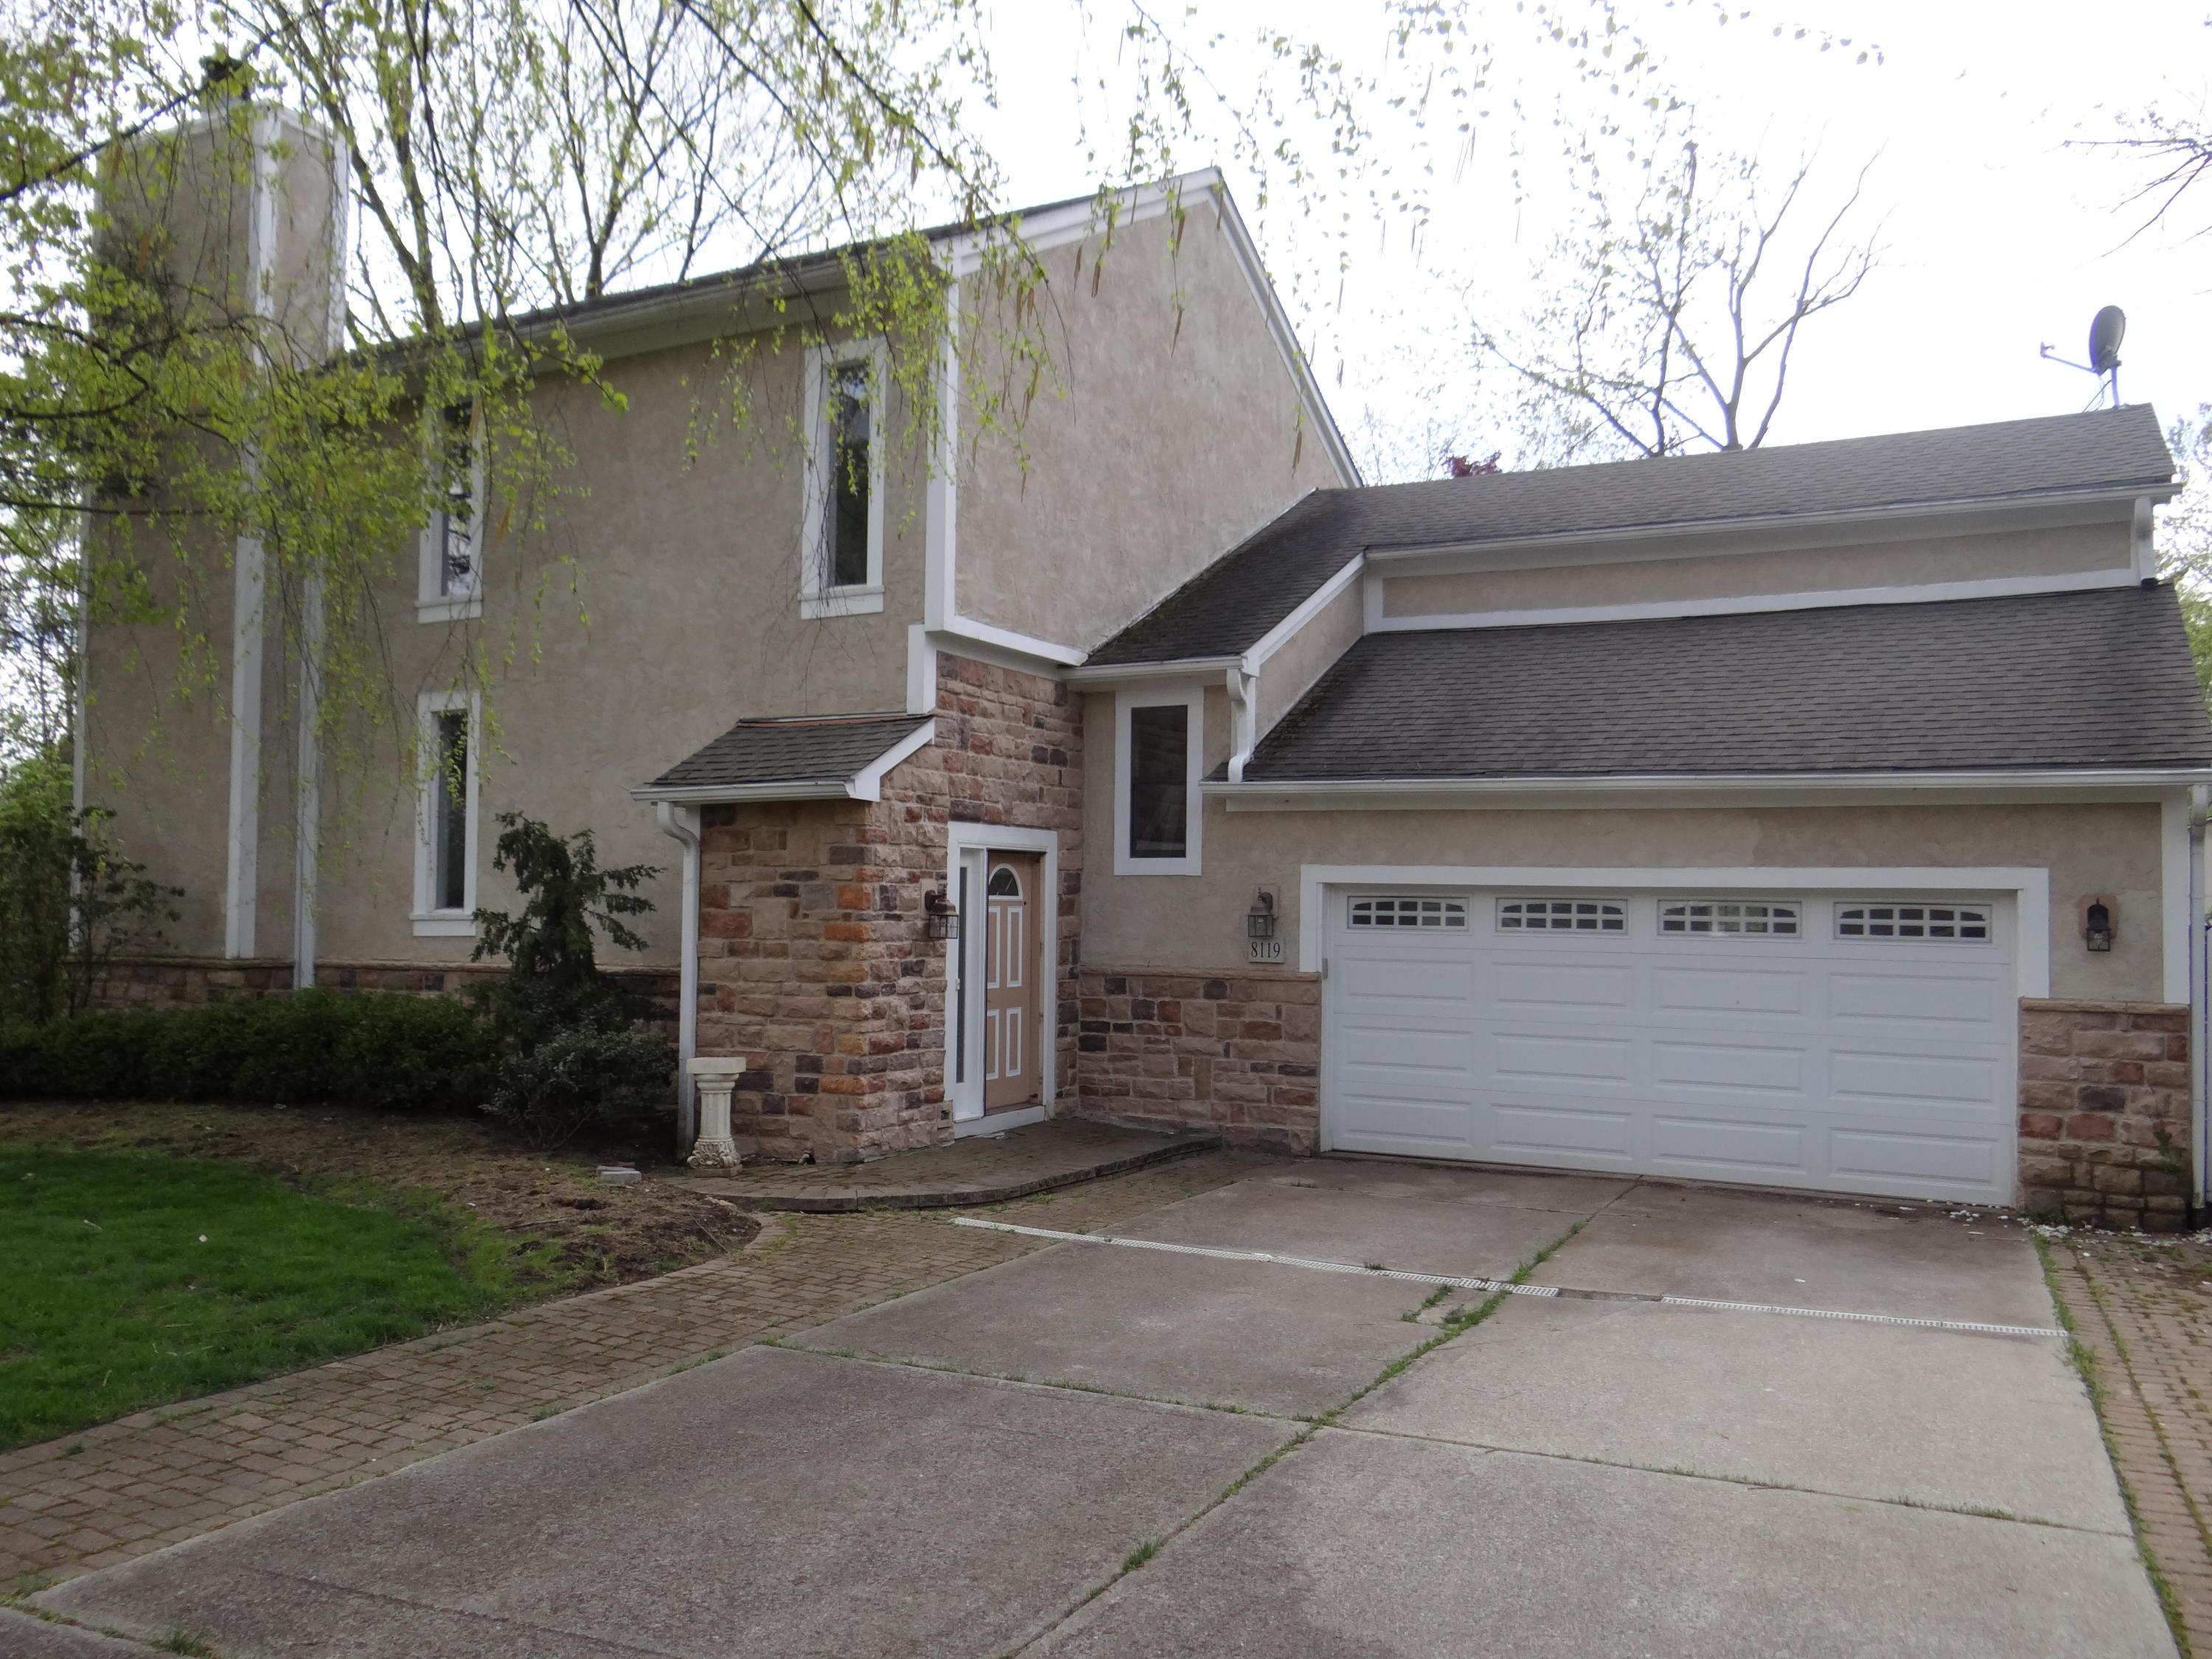 8119 Glencree Place, Dublin, Ohio 43016, 5 Bedrooms Bedrooms, ,3 BathroomsBathrooms,Residential,For Sale,Glencree,220015280